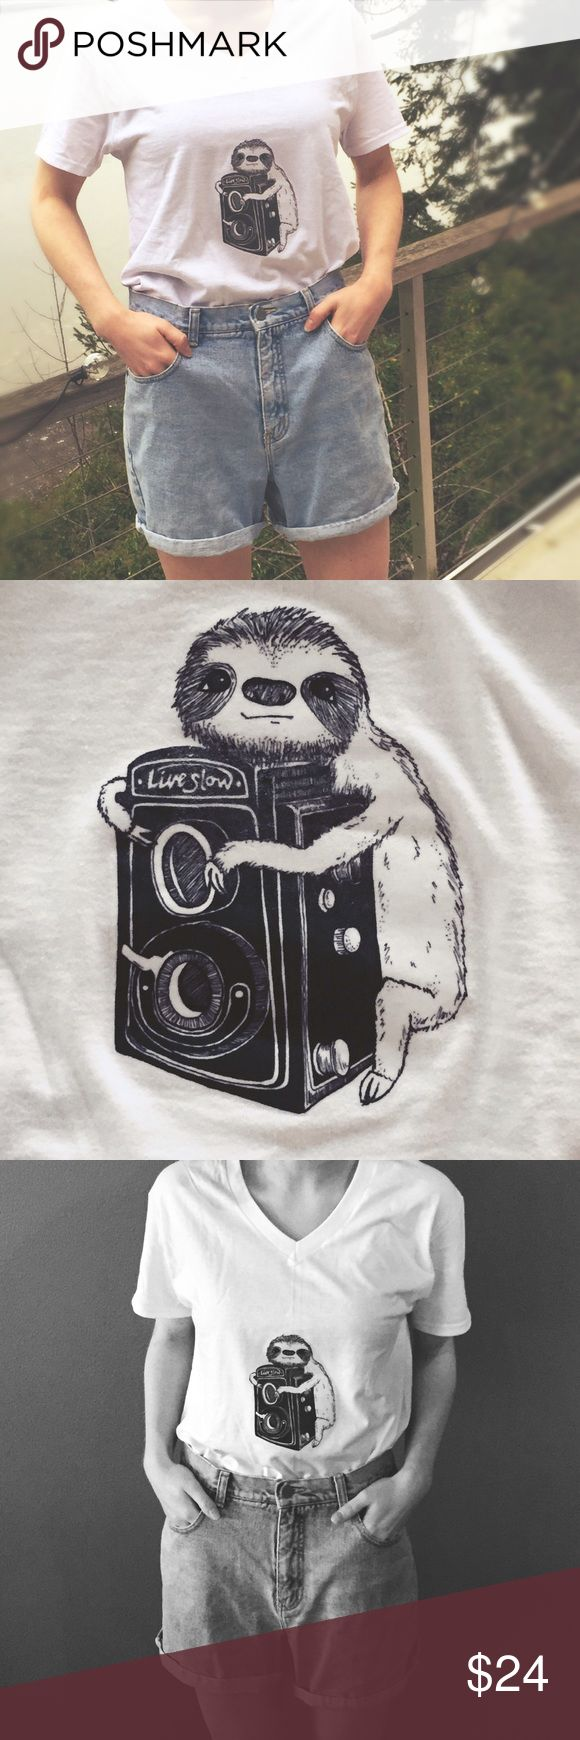 Handmade Retro Sloth Tee Live slow. Baby sloth wrapped around vintage camera have been hand drawn (by me) and heat transferred cacti upon a brand spankin new Fruit of the Loom men's tee (new, but came without tags). To wash: turn inside out, wash in cold water without bleach, and lay flat to dry. Bundle and save! Tops Tees - Short Sleeve